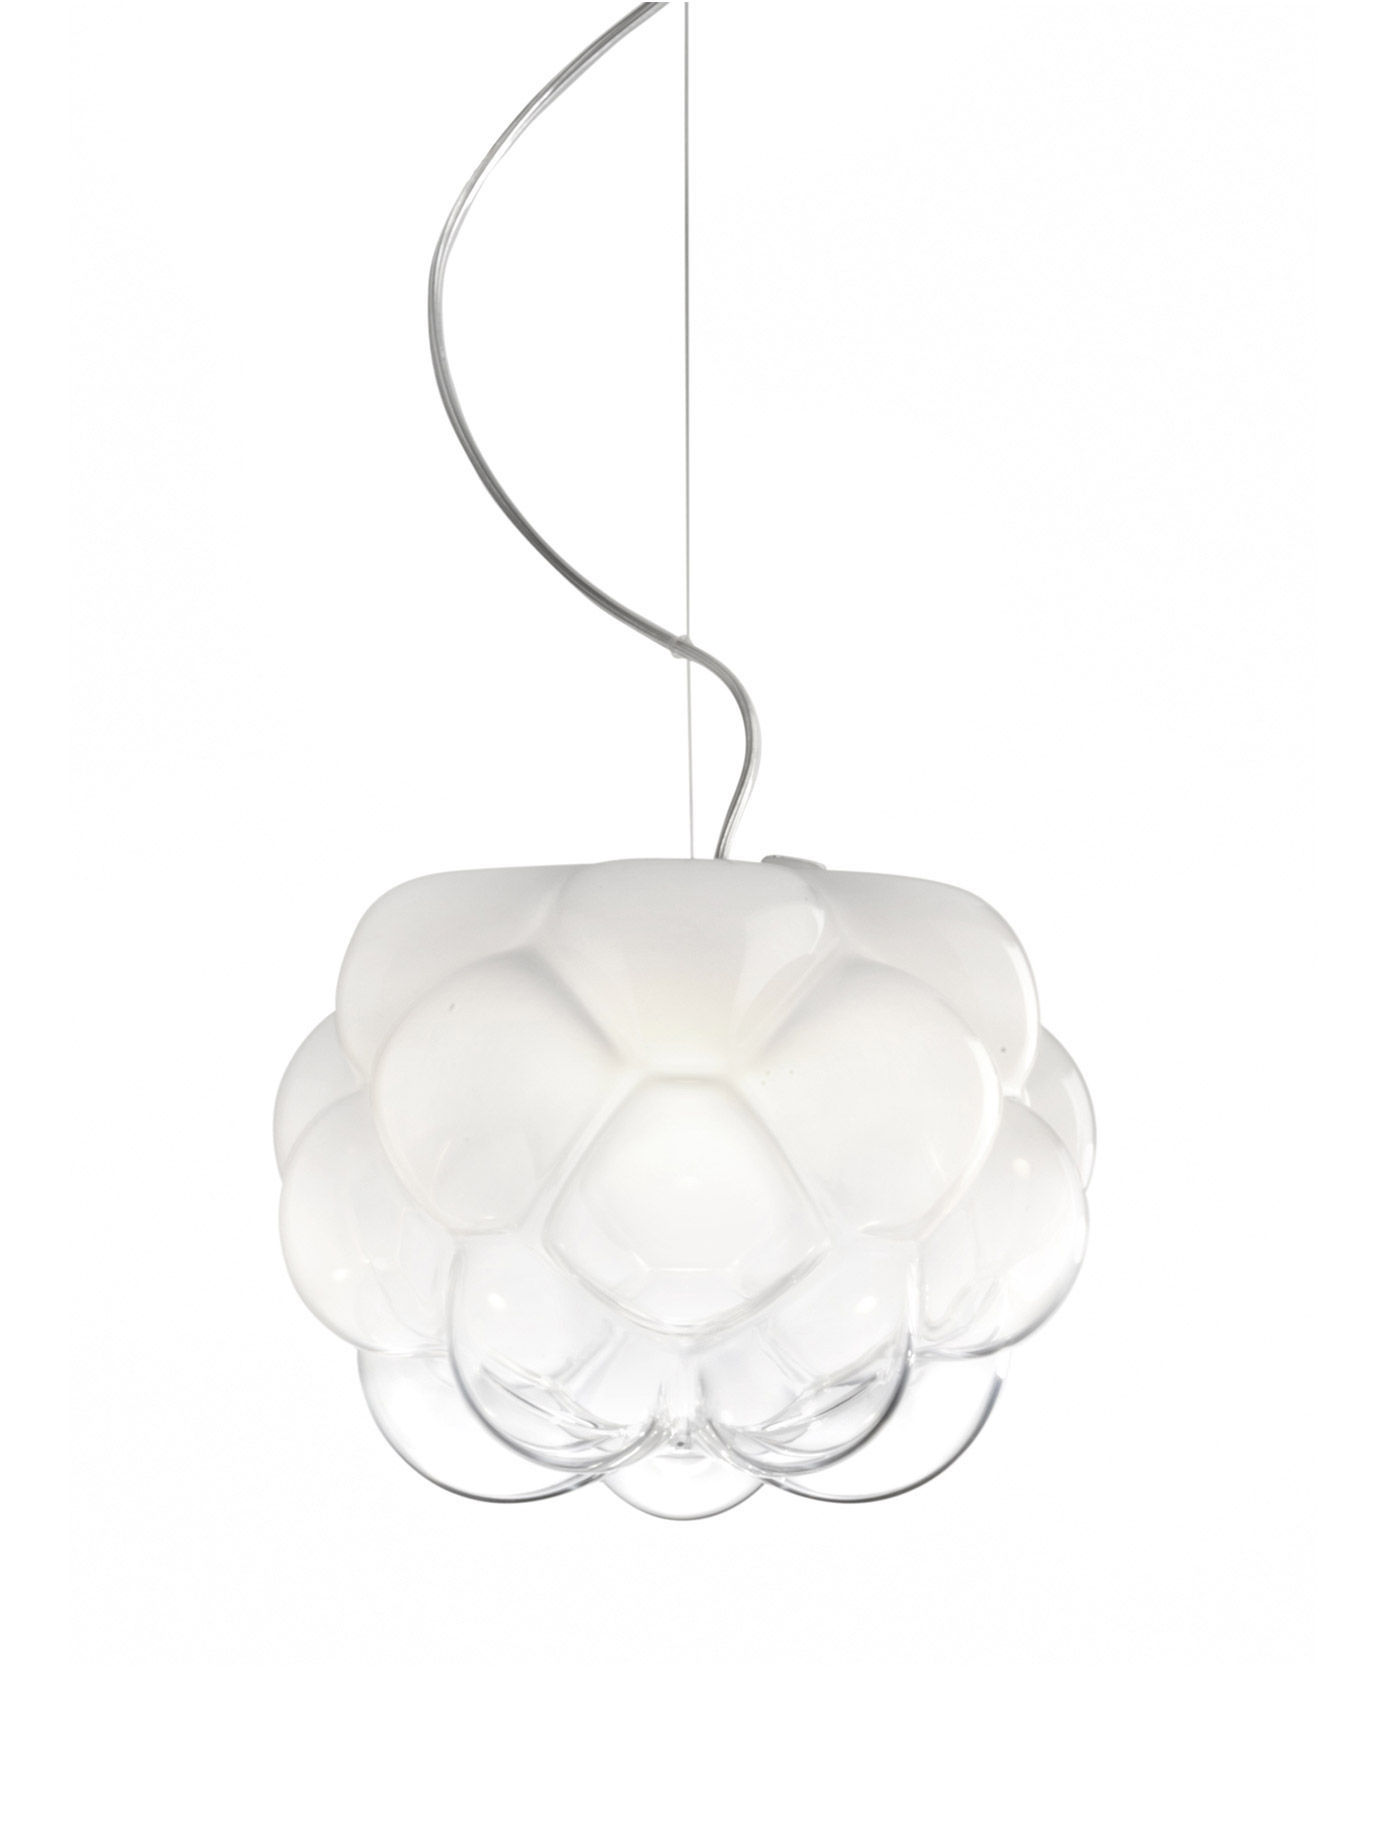 Lighting - Pendant Lighting - Cloudy Pendant by Fabbian - White & transparent - Blown glass, Moulded aluminium